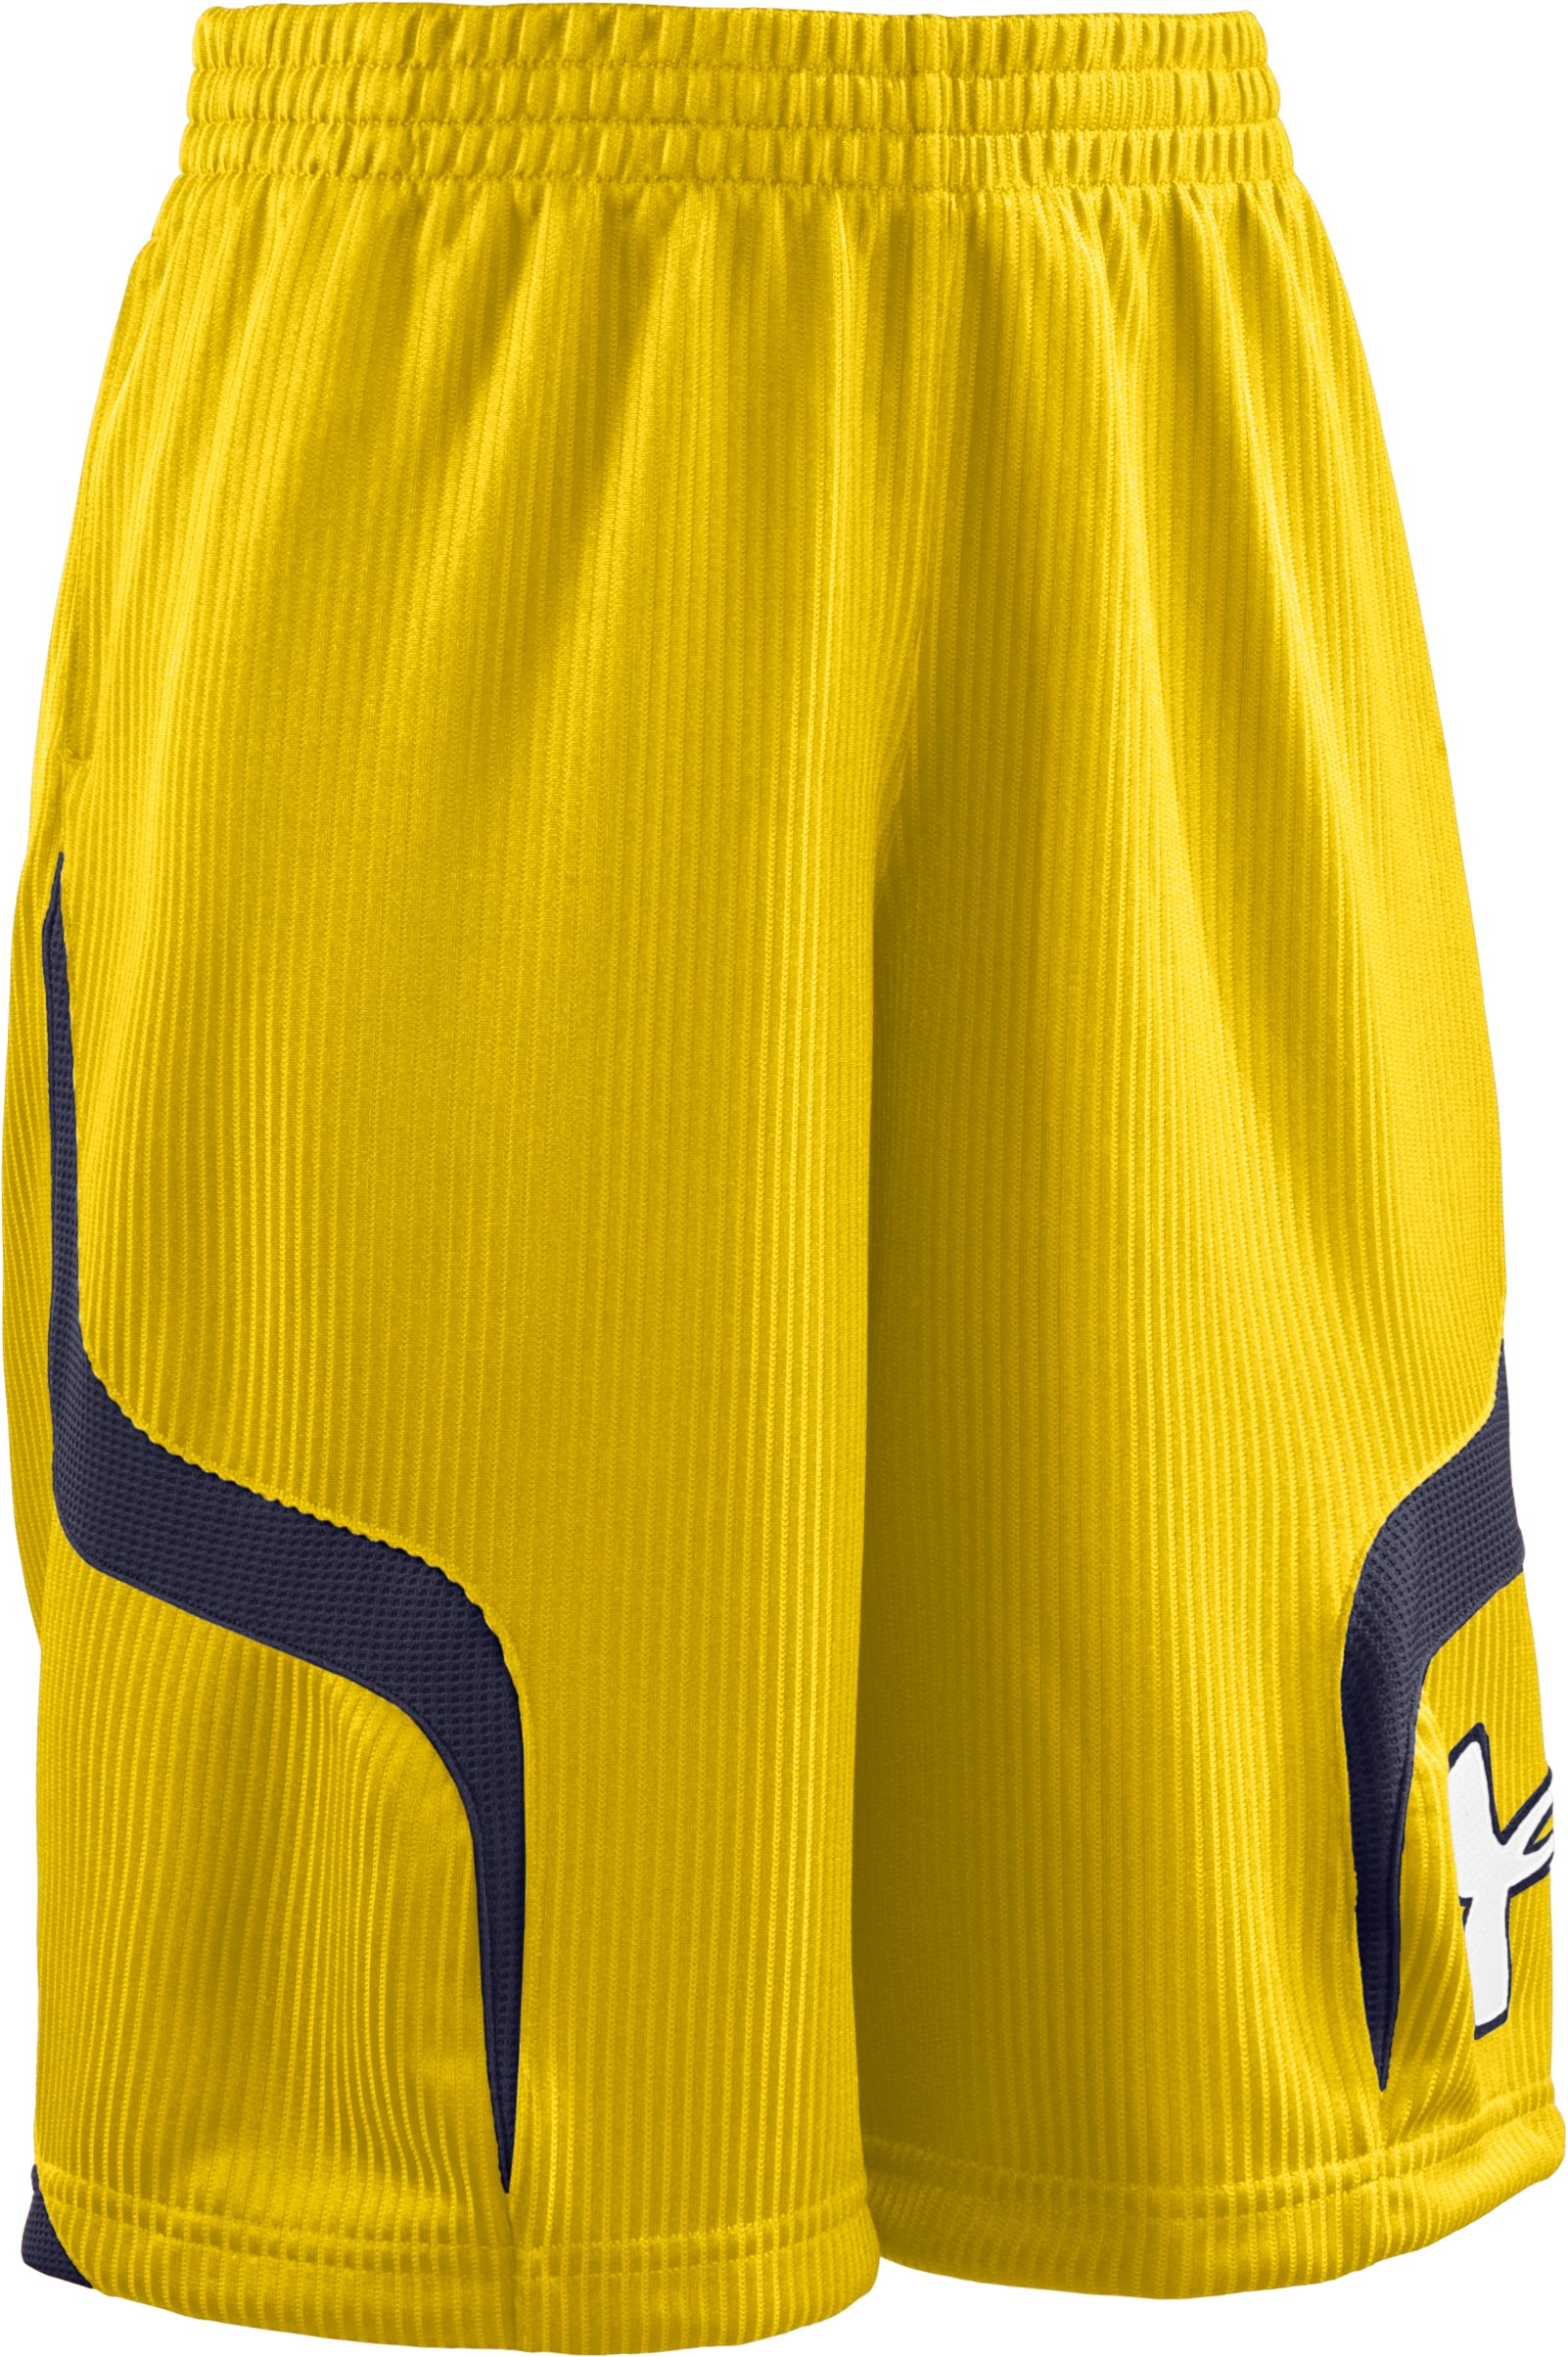 "Boys' Valkyrie 10"" Basketball Shorts, Taxi"